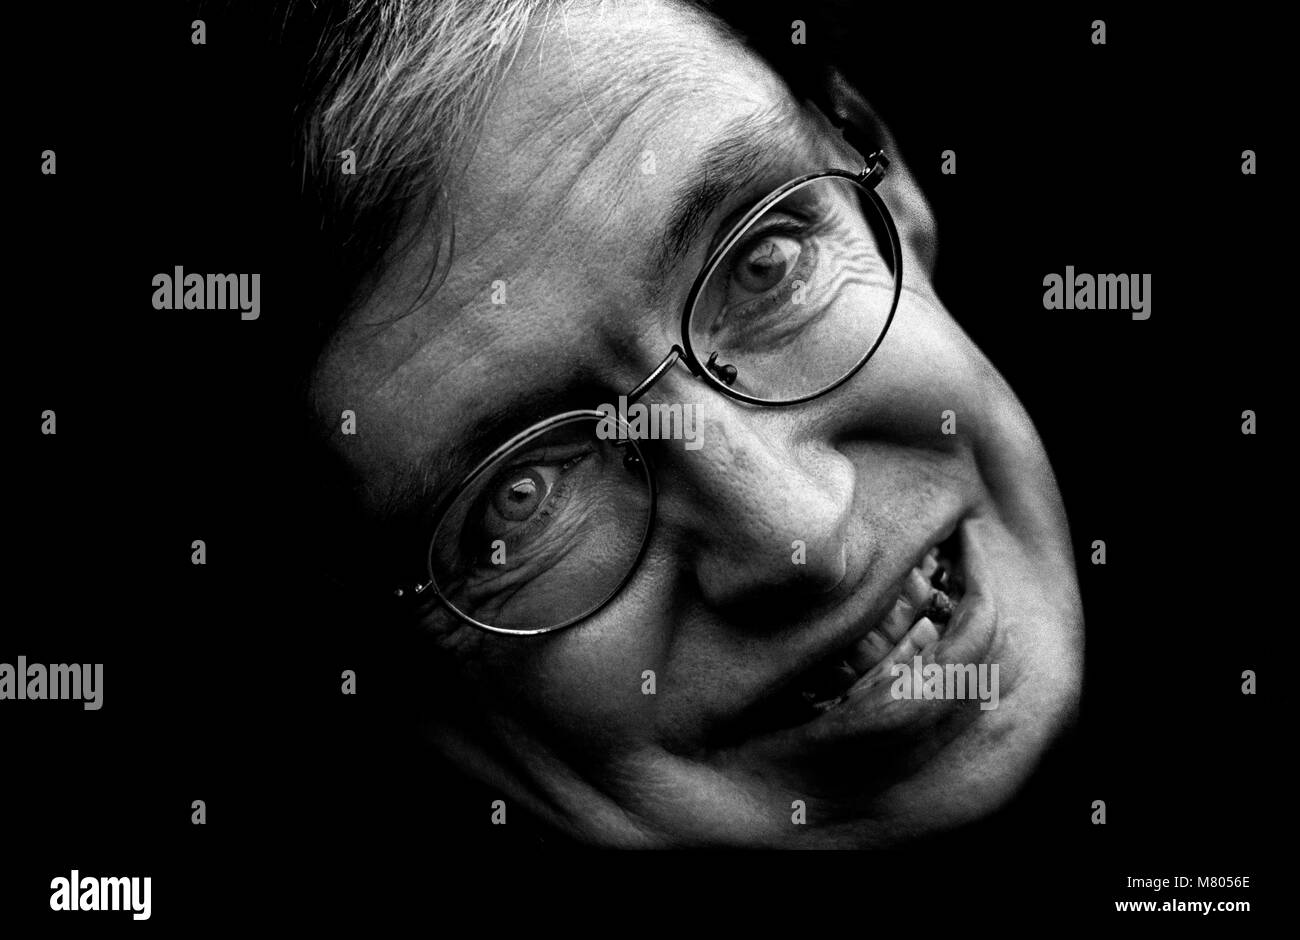 Prof. Stephen Hawking BY BRIAN HARRIS © 11 January 2002 whose death was announced today today 14 March 2018 - Stock Image